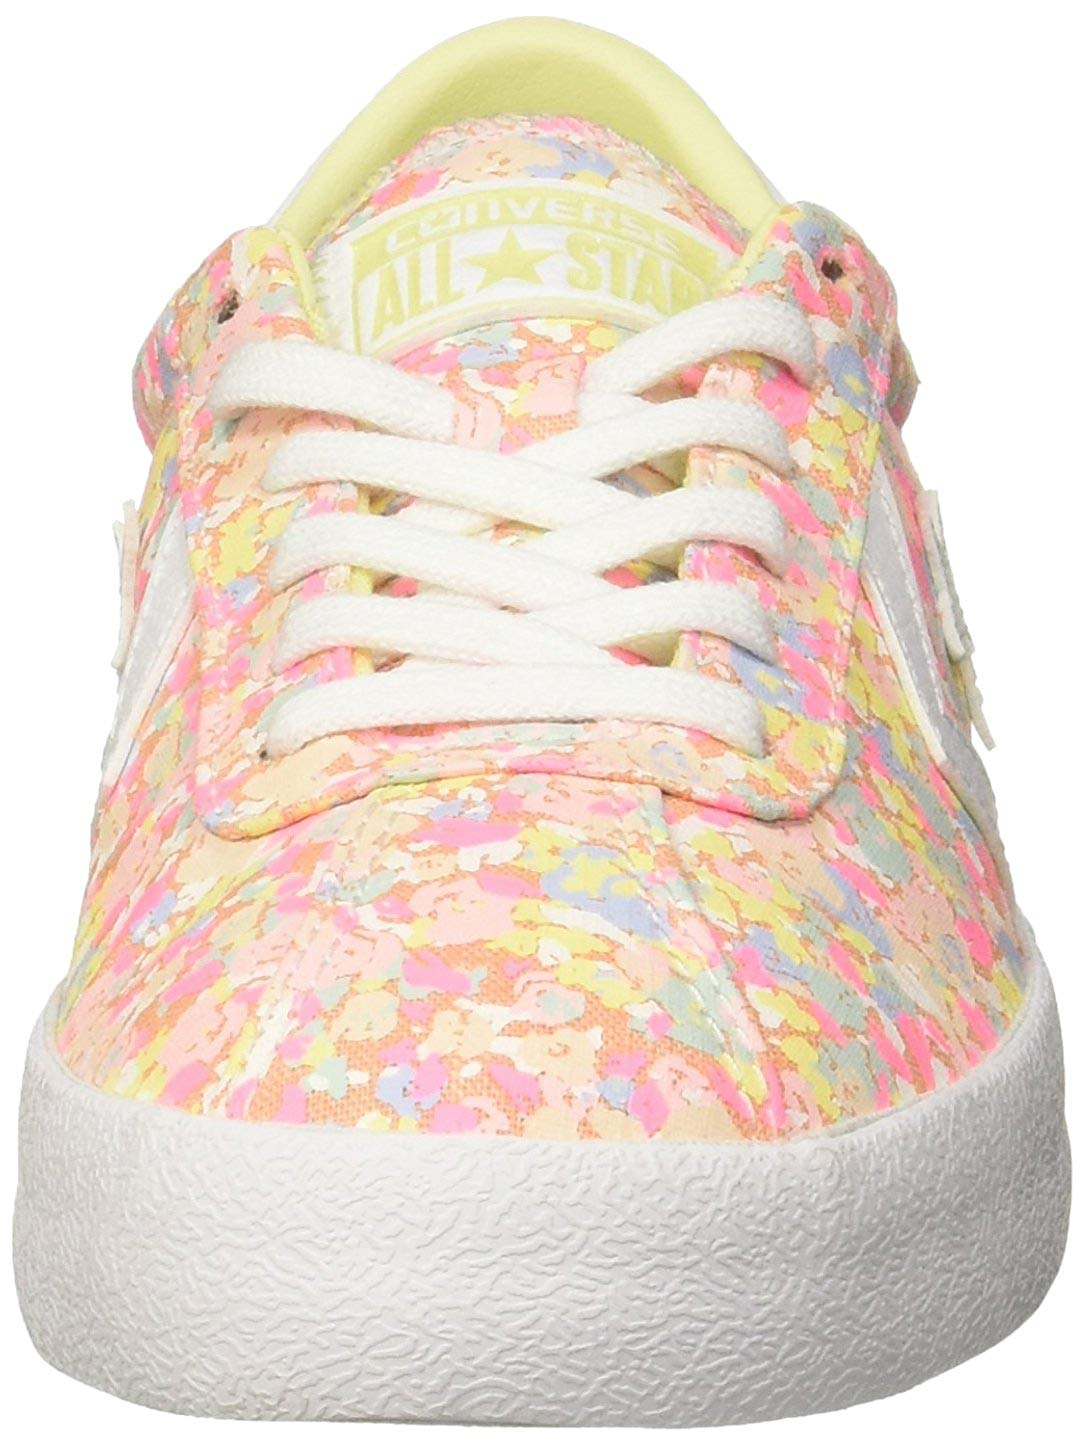 Converse Womens Breakpoint Floral Low Top Sneaker 058cbad0f